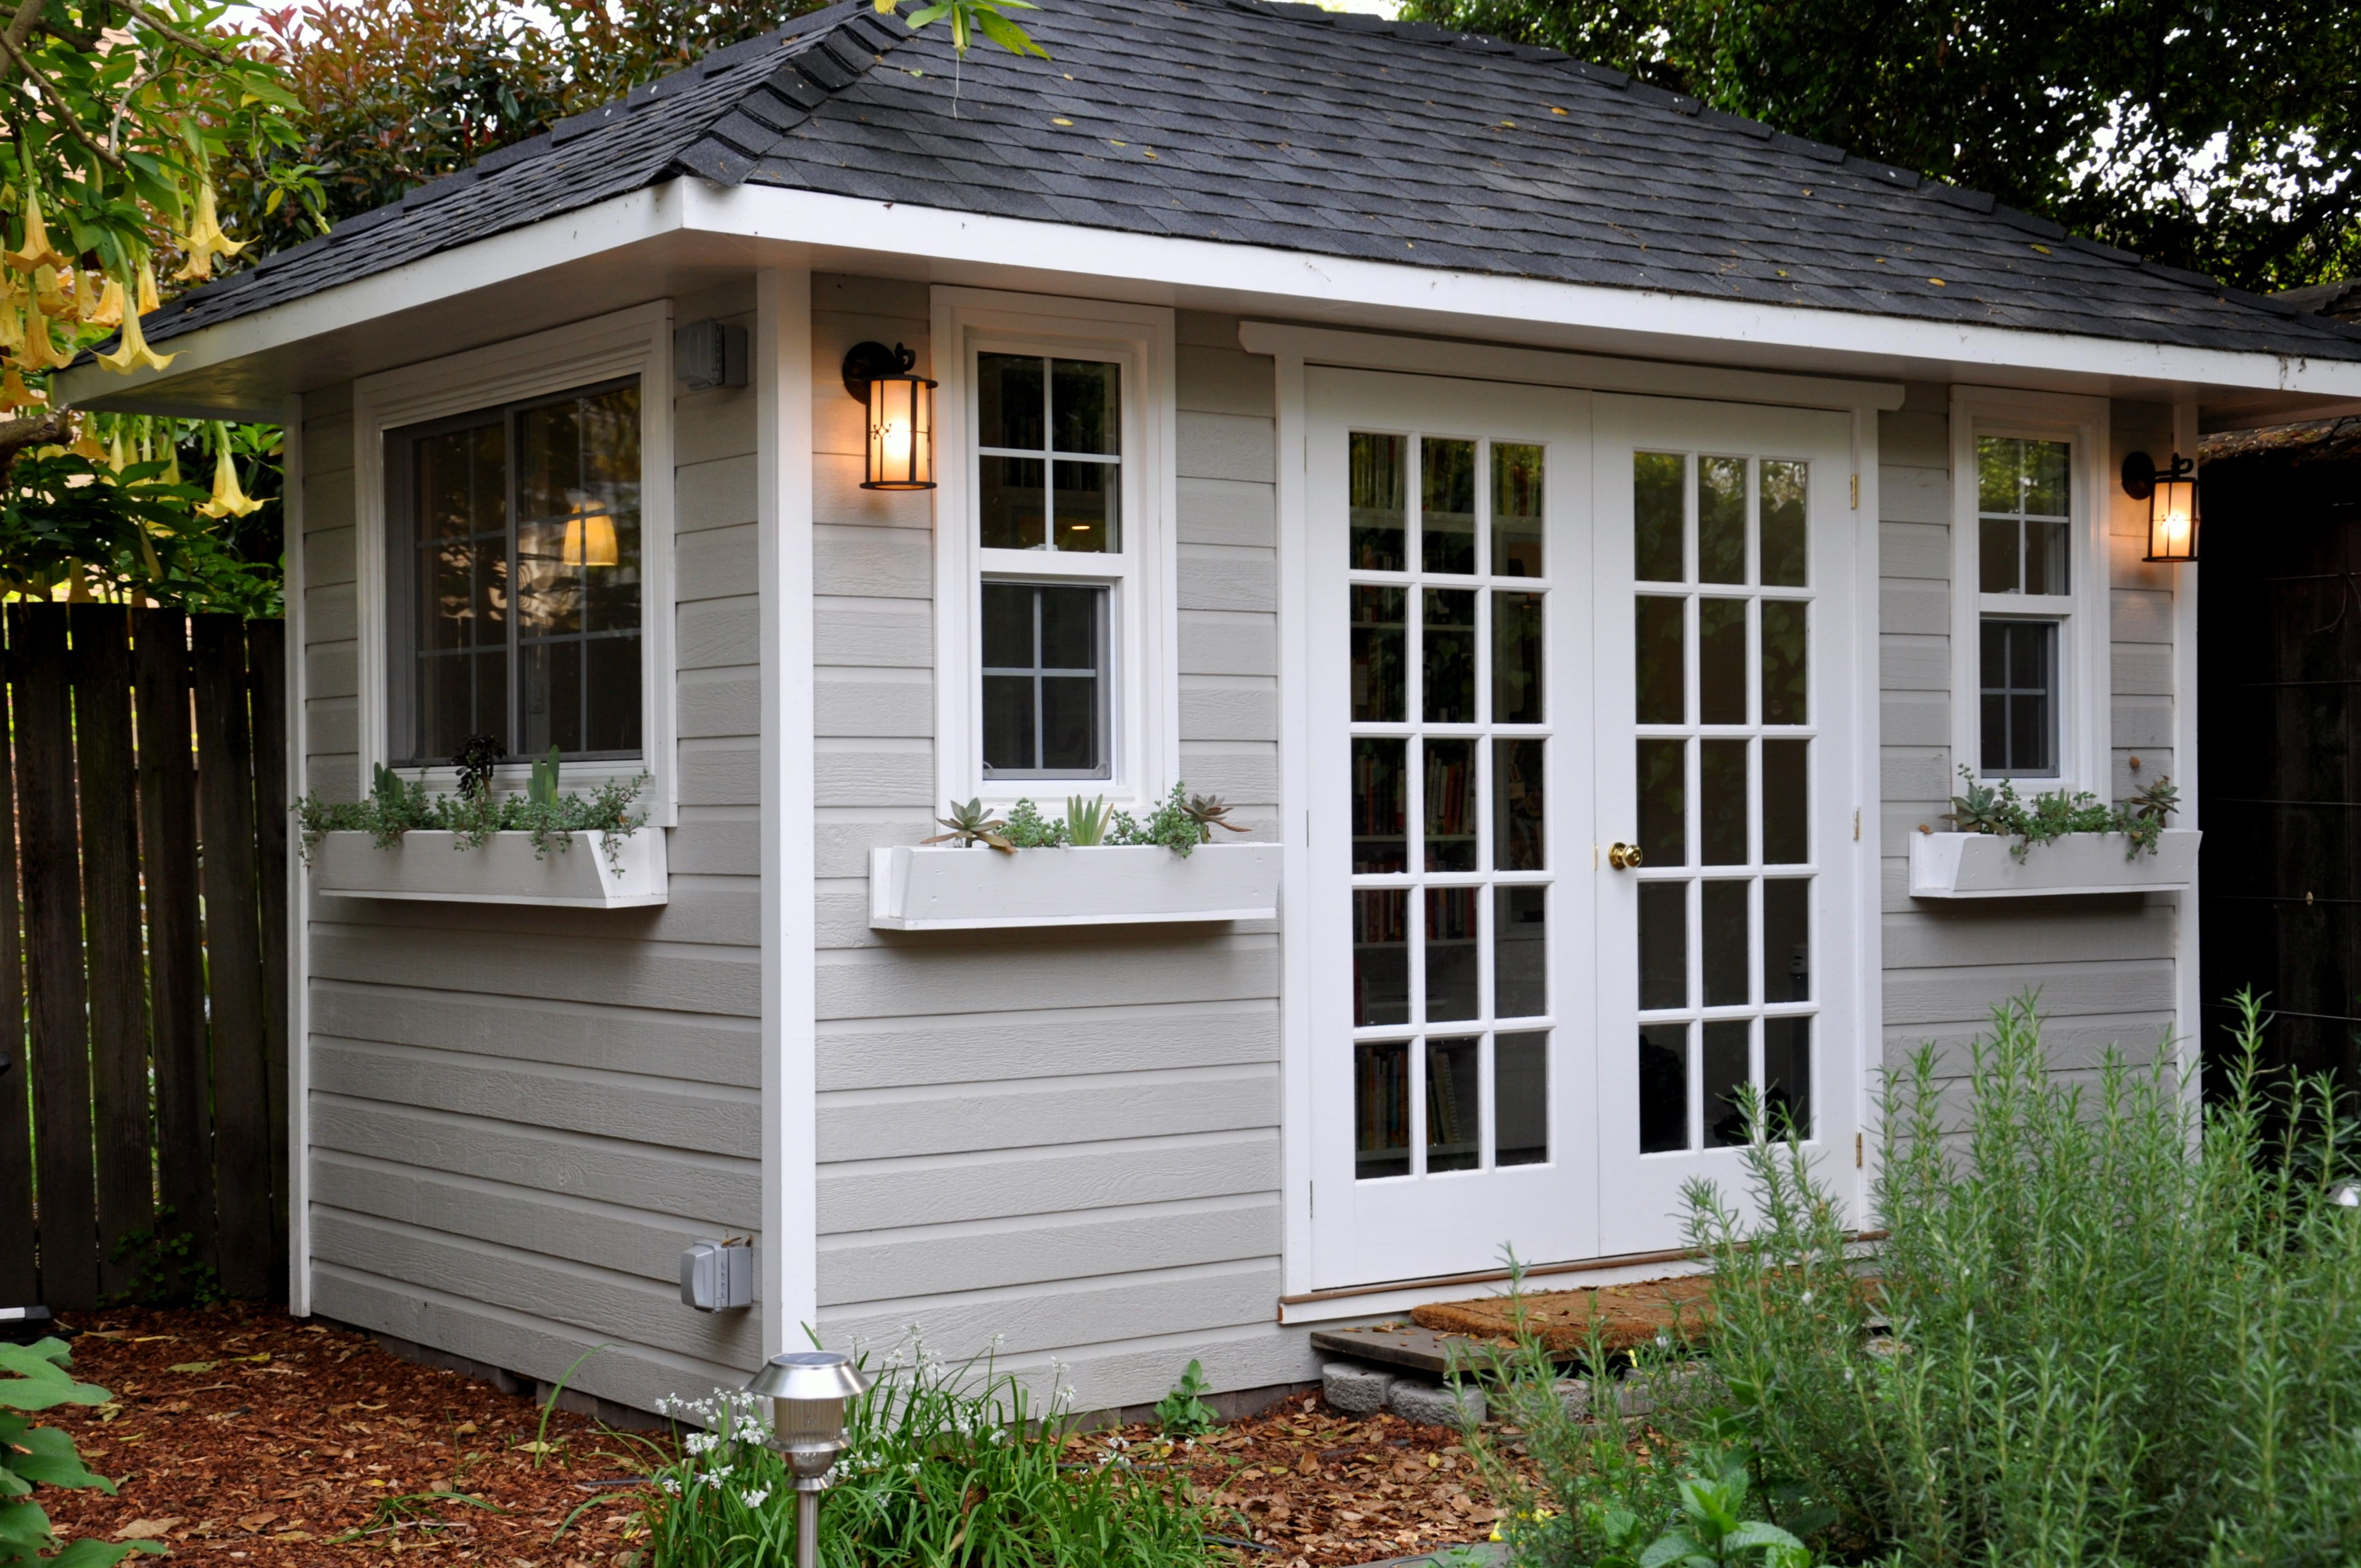 Summerwood shed 8 feet x 14 feet sonoma studio for Backyard cottage shed